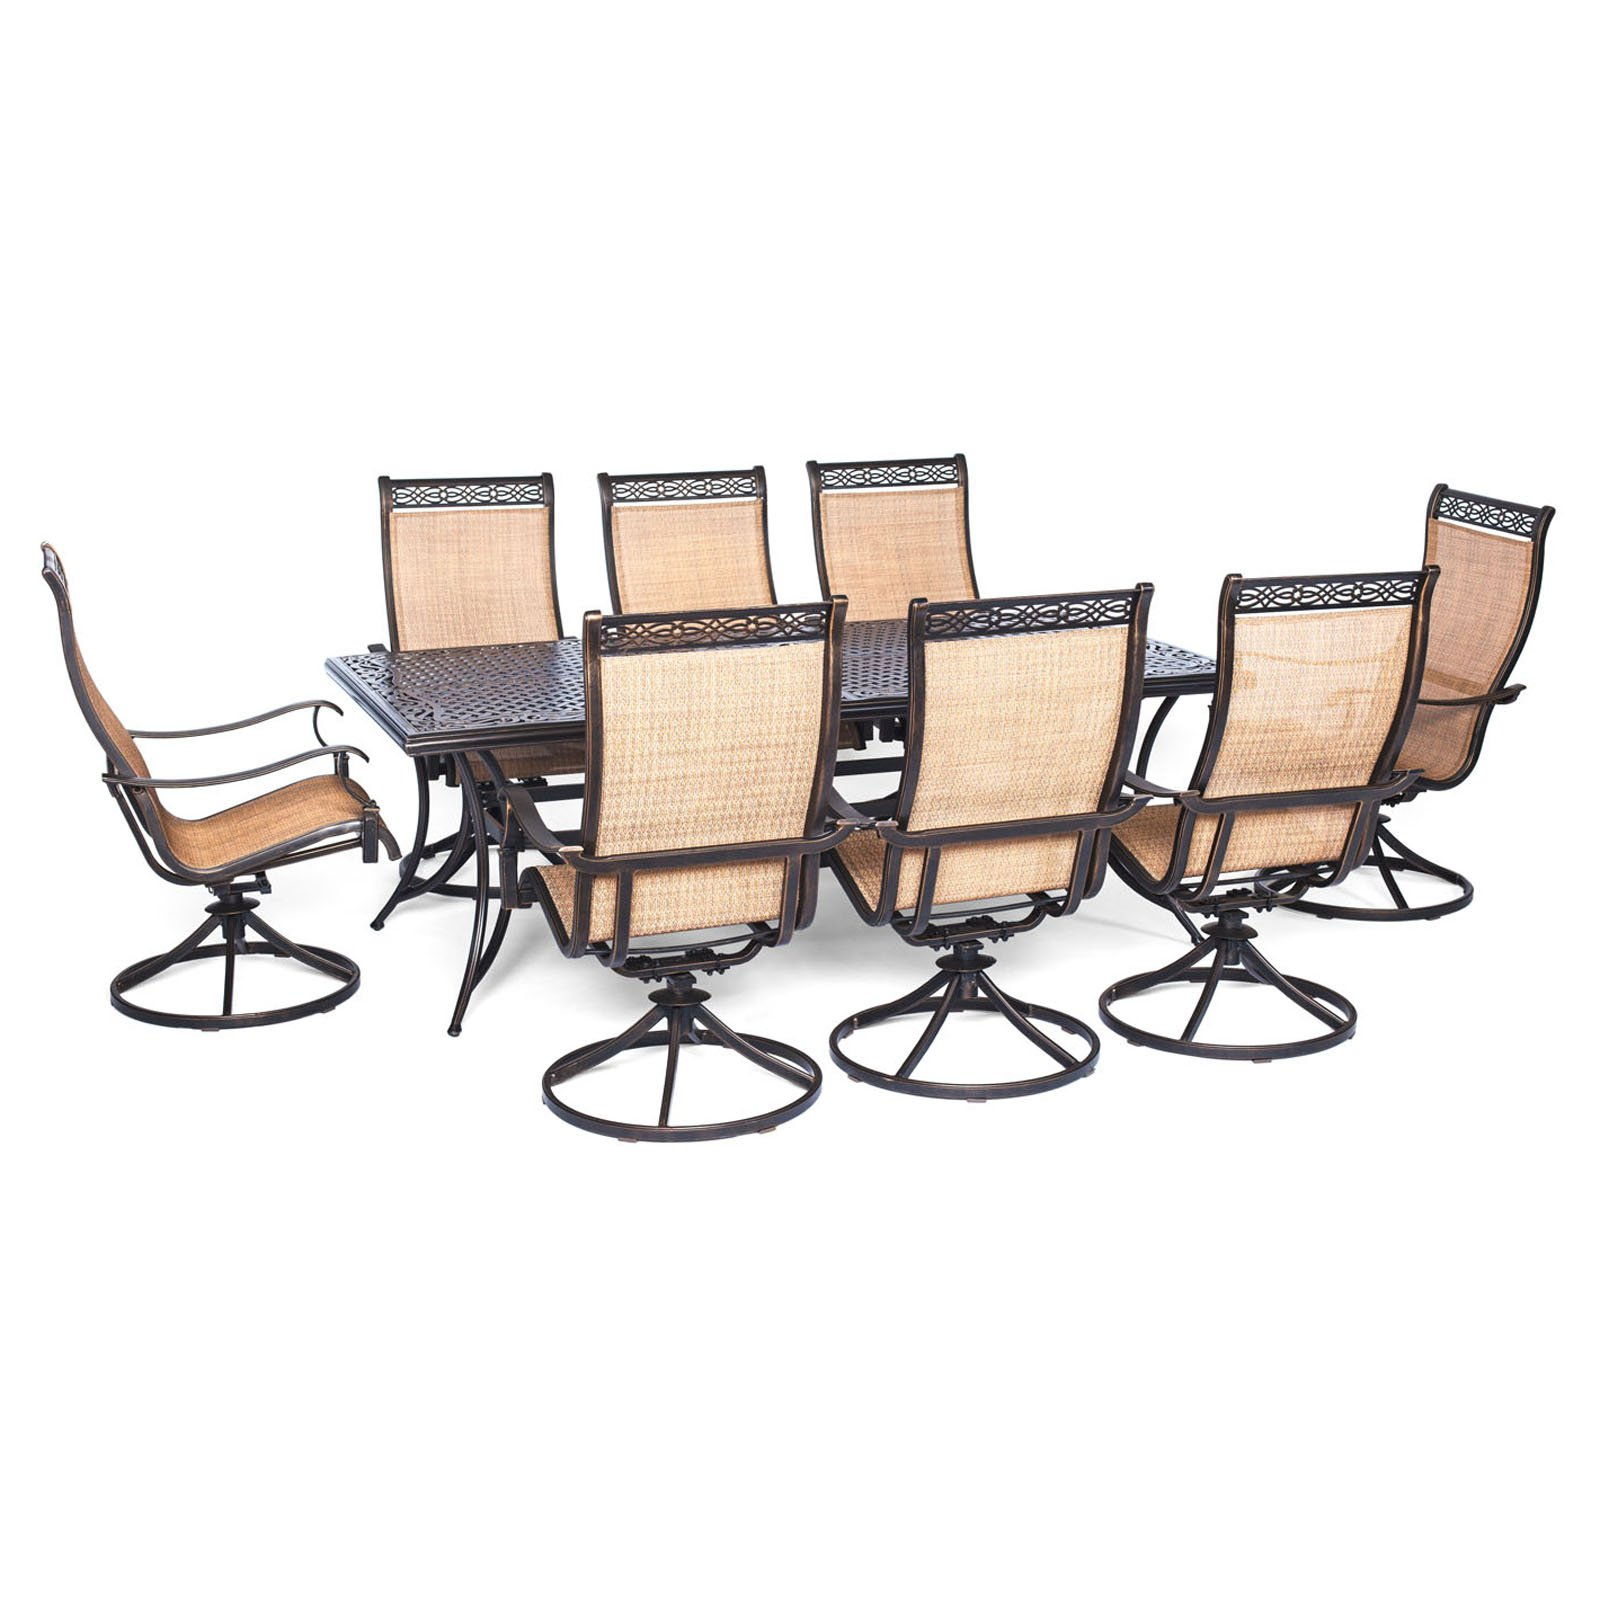 Hanover Outdoor Manor 9-Piece Outdoor Dining Set with 8 Swivel Rockers, Cedar/Bronze